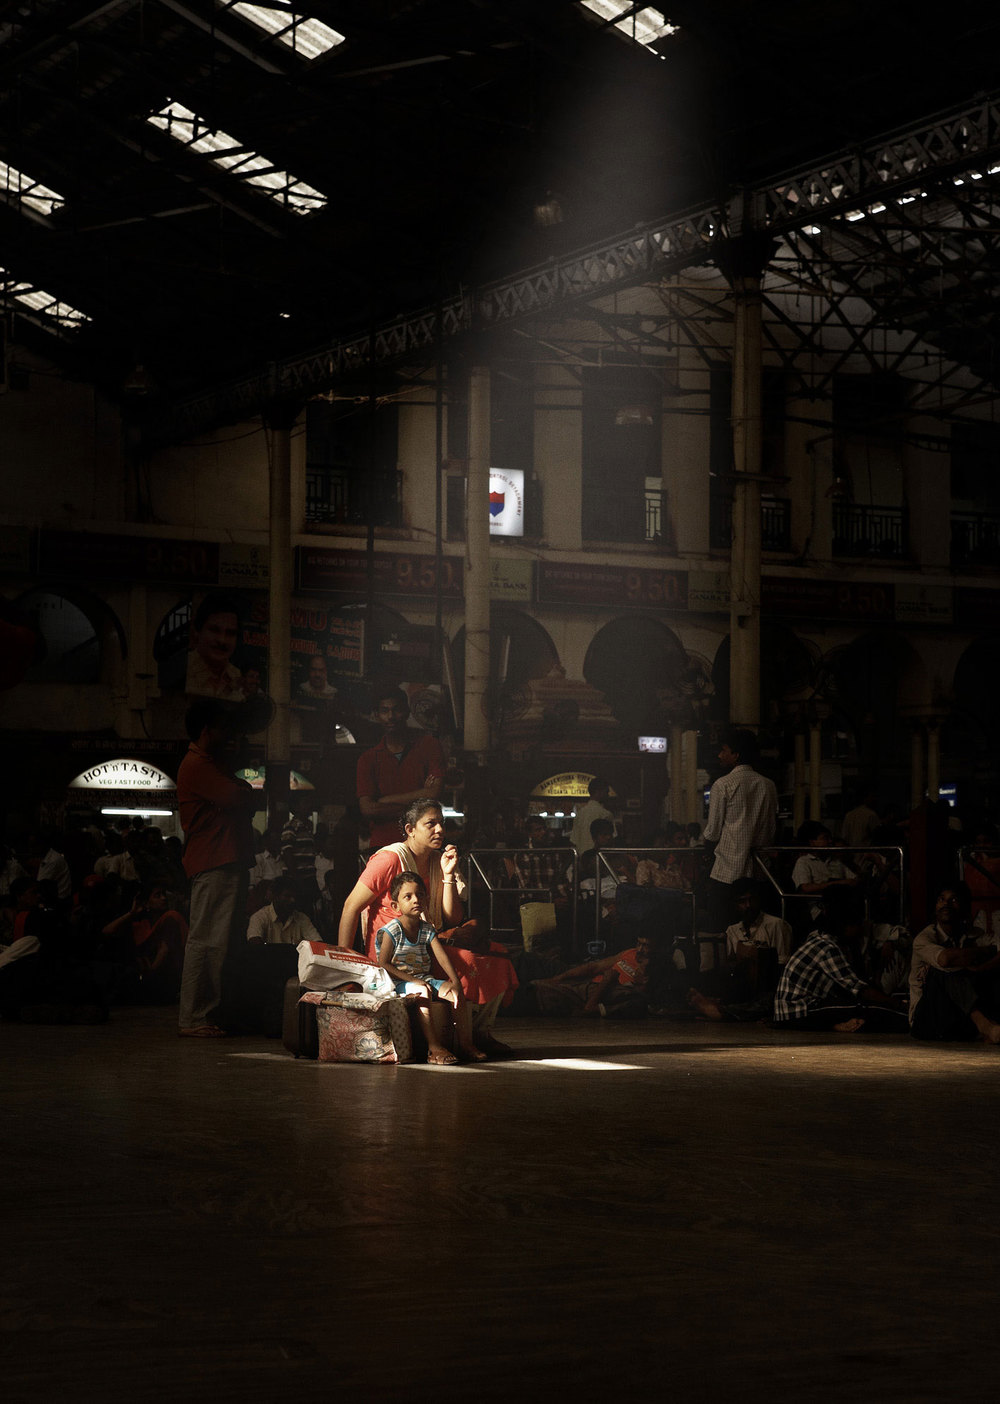 Mother and daughter in a ray of light. Chennai Central Railway Station, India.